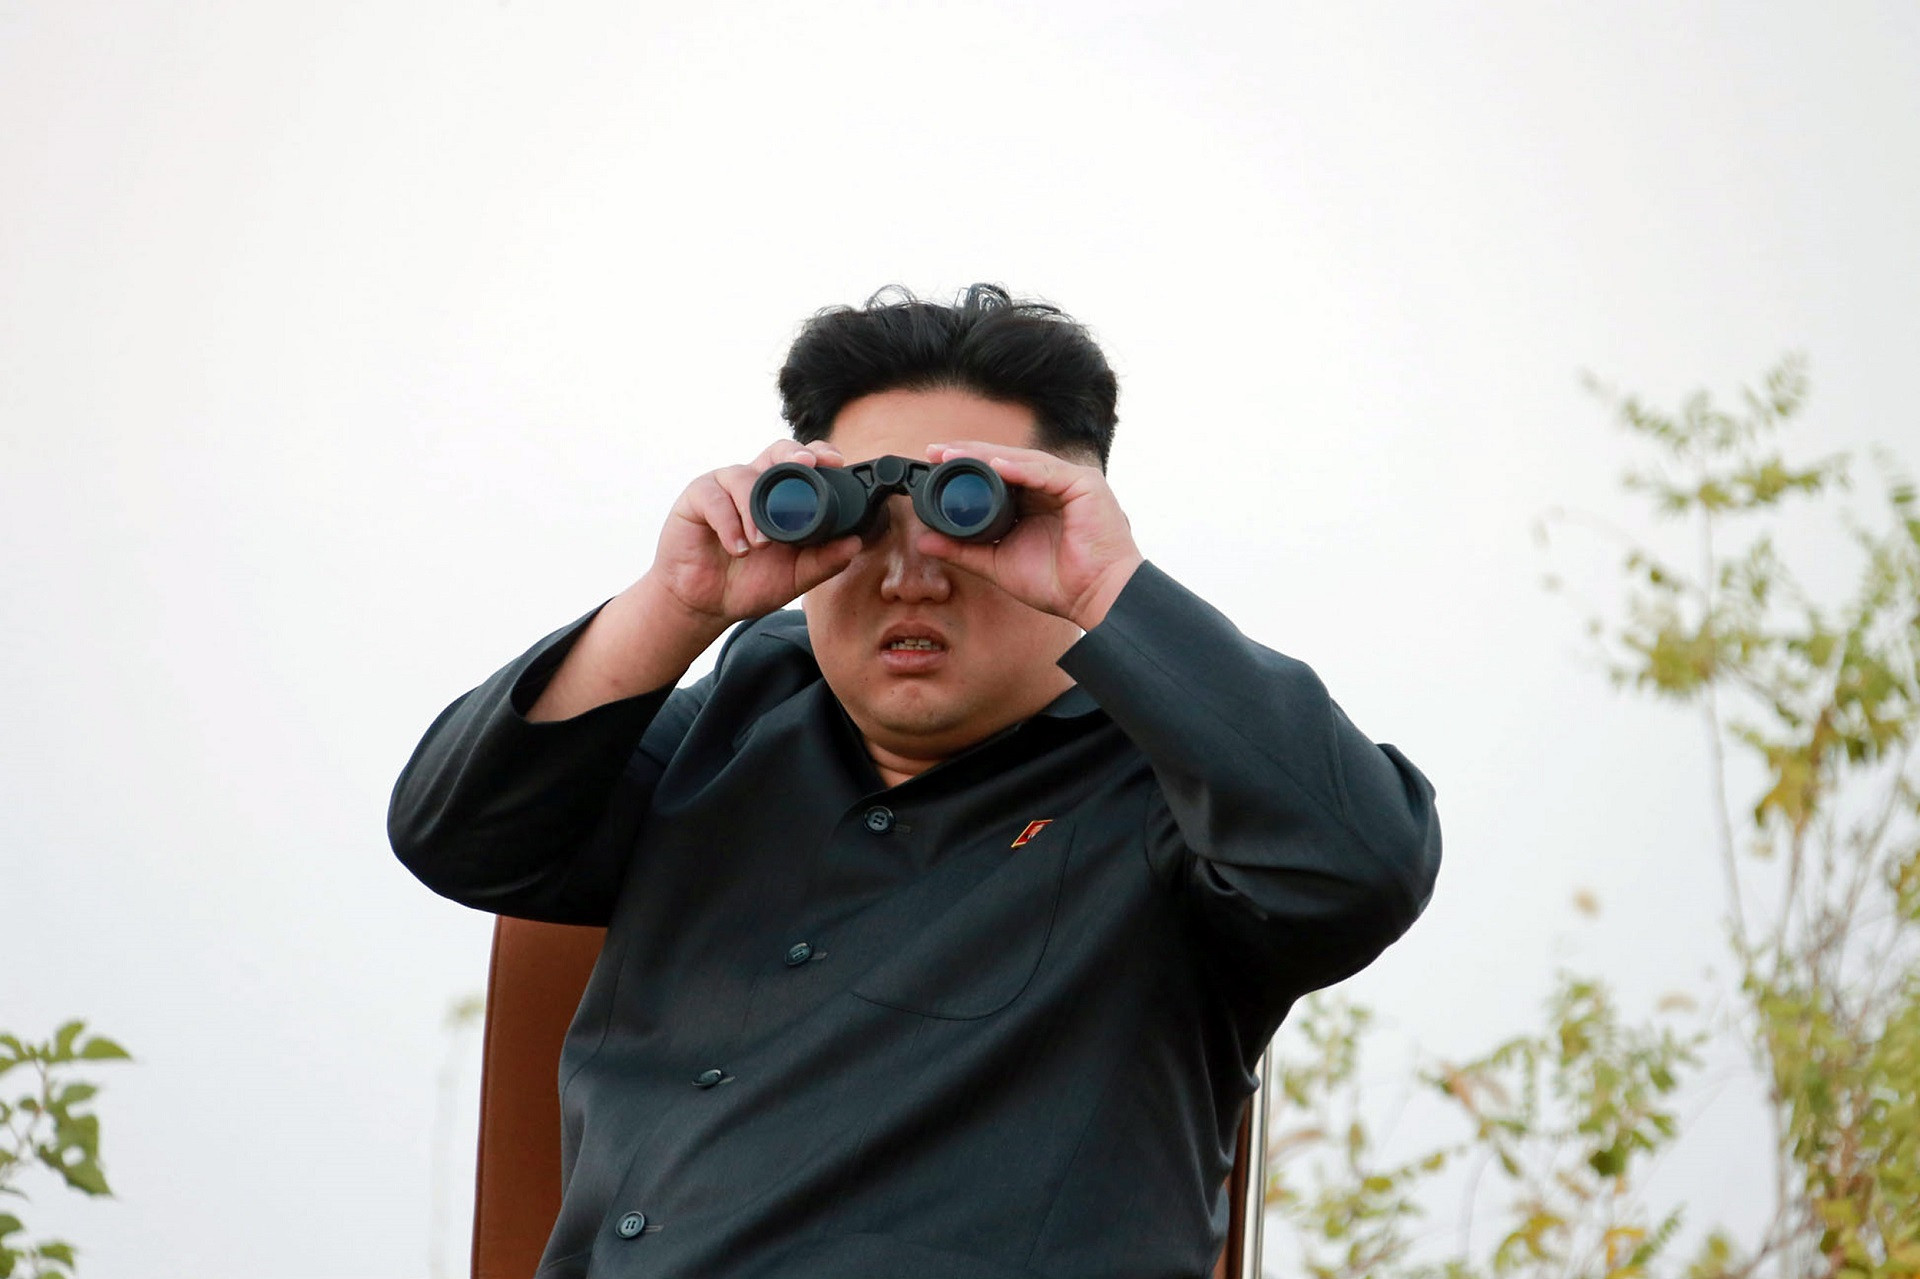 Kimg Jong-un, searching for coherence in American foreign policy